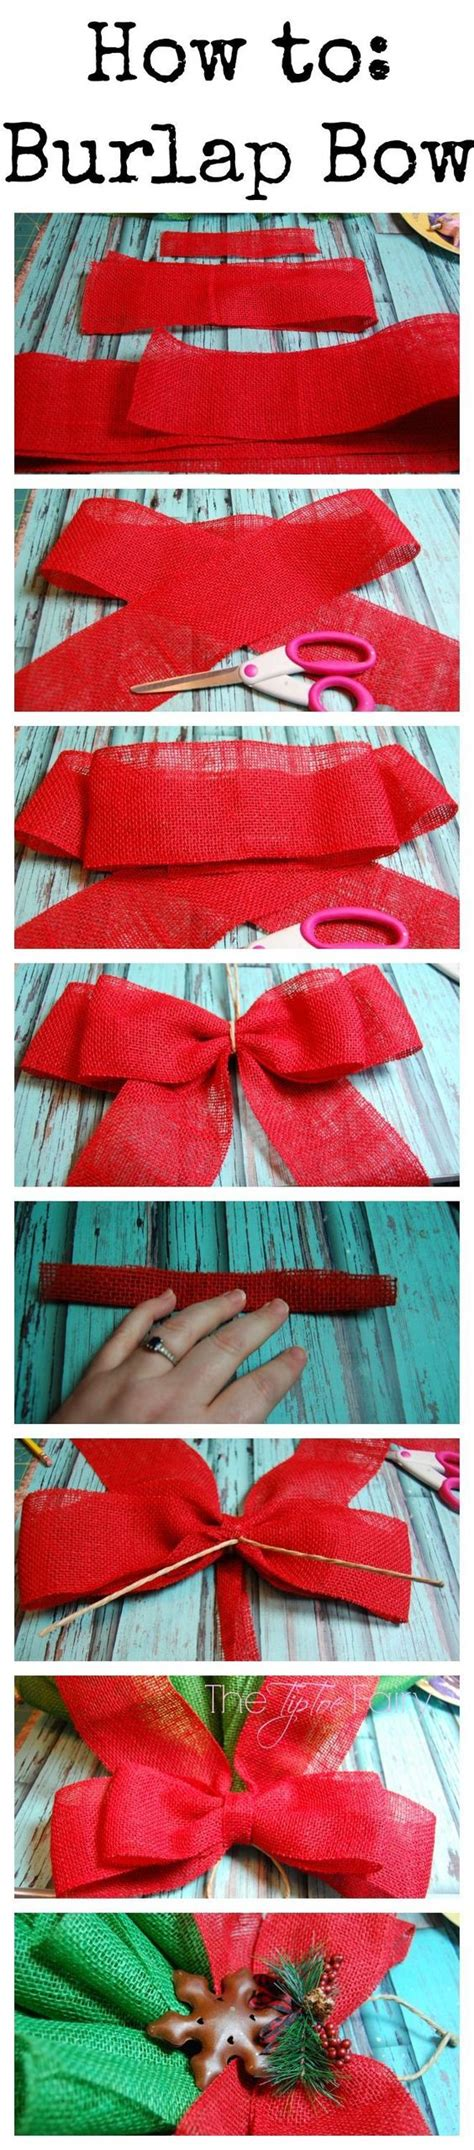 burlap bows burlap and how to make on pinterest